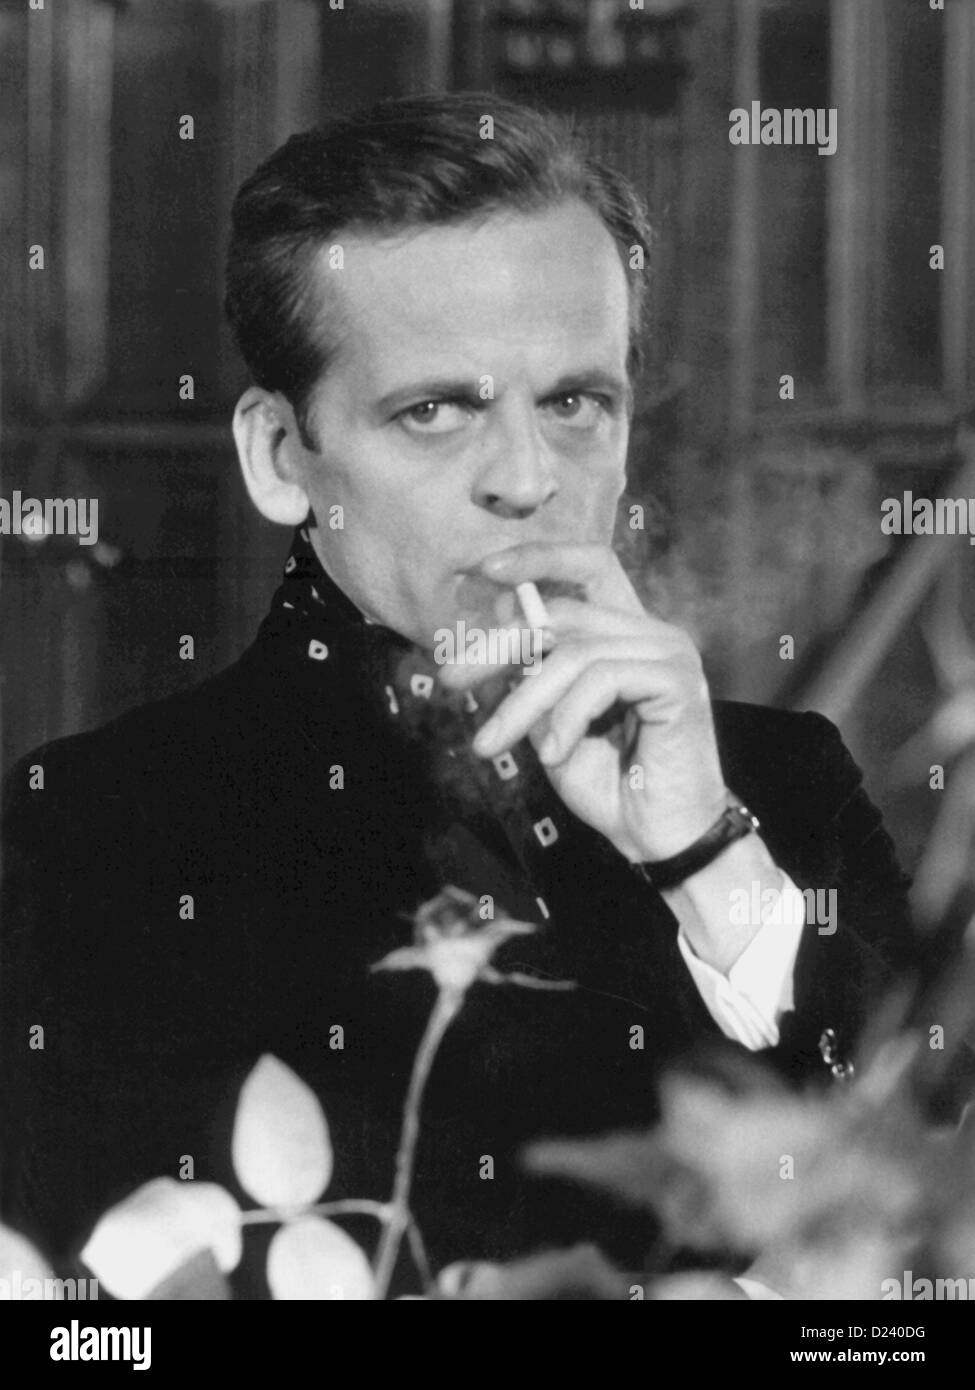 (dpa files) - German actor Klaus Kinski in a movie scene of the Edgar Wallace film 'A doppia faccia' ('Double Face'), 1969. An 'enfant terrible' of the film industry, Kinski's films include 'Buddy Buddy', 'For a Few Dollars More', as well as 'Aguirre, der Zorn Gottes' ('Aguirre: The Wrath of God') and 'Nosferatu: Phantom der Nacht' ('Nosferatu the Vampire'). Kinski was born on 18 October 1926 in Danzig, Germany (now Gdansk, Poland) under the name of Nikolaus Guenther Nakszynski and died on 23 November 1991 in Lagunitas, California, of a heart attack. Stock Photo